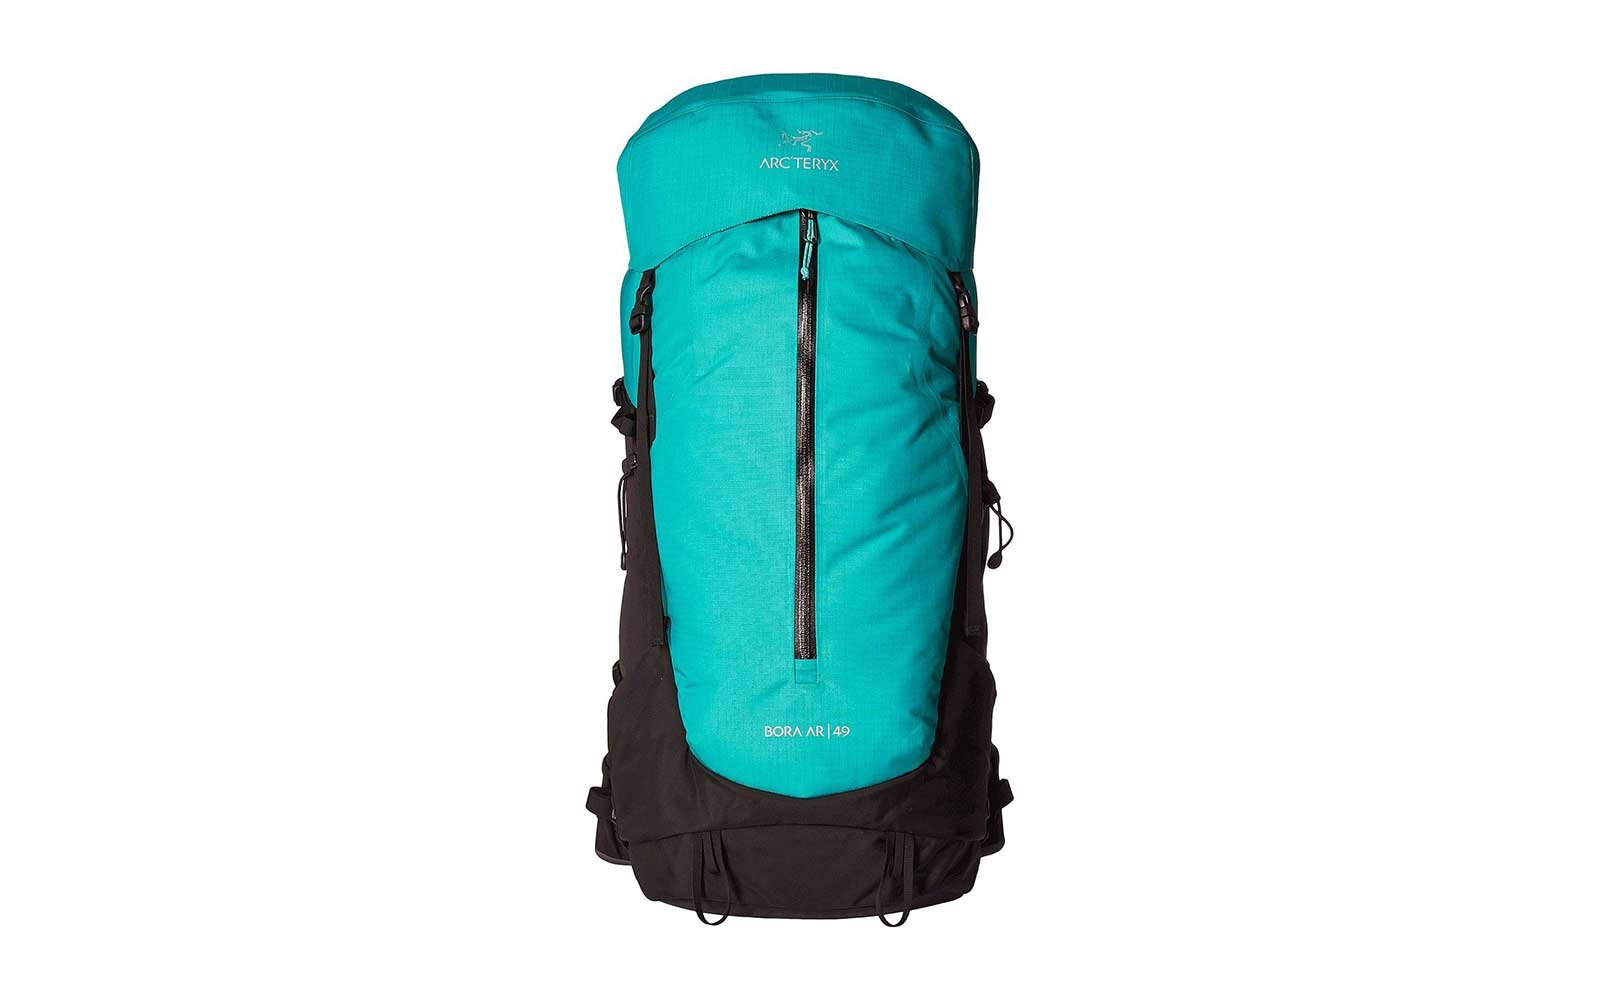 52d07d57eef9 Teal waterproof backpack from Arcteryx